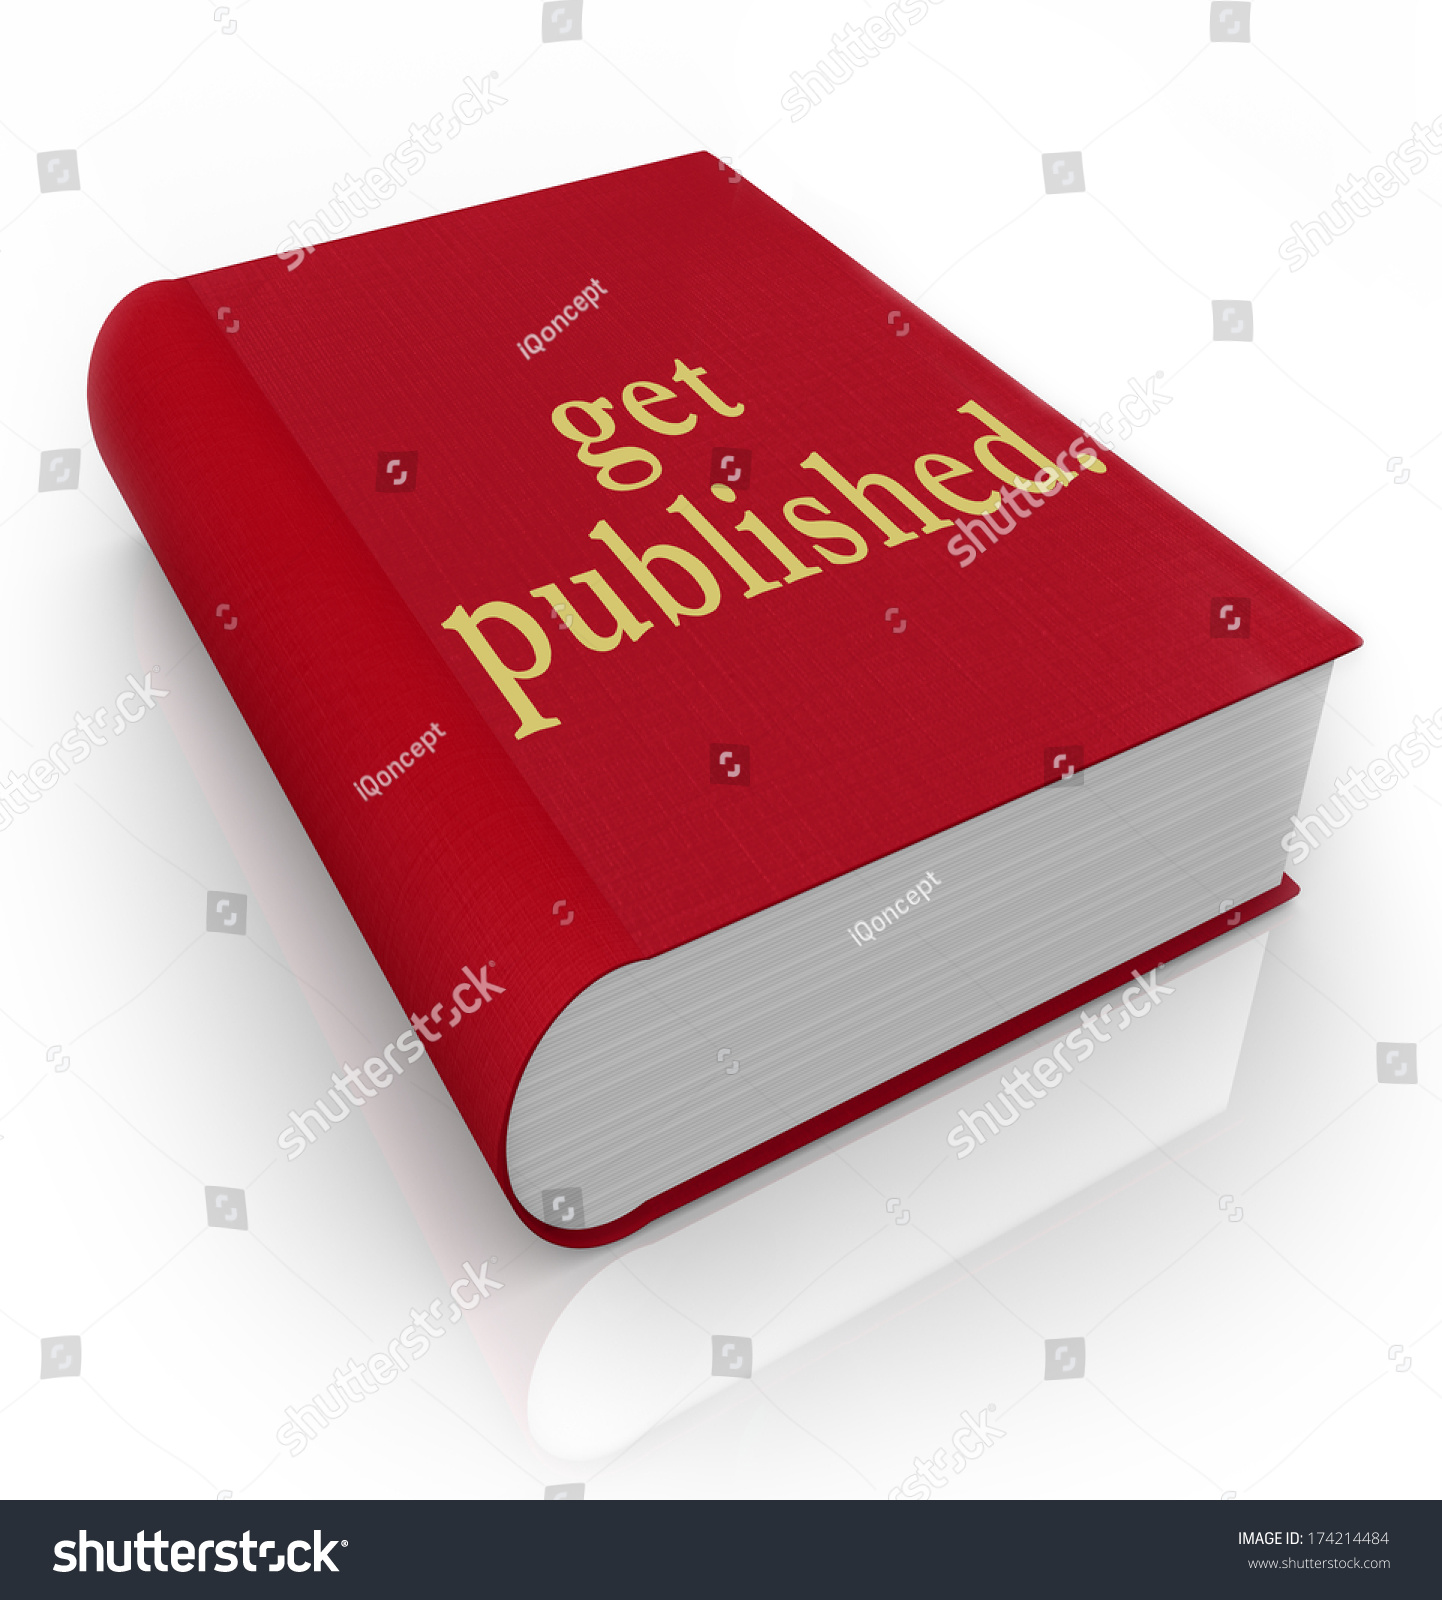 Get Book Cover Images From : Get published book cover new author writer stock photo